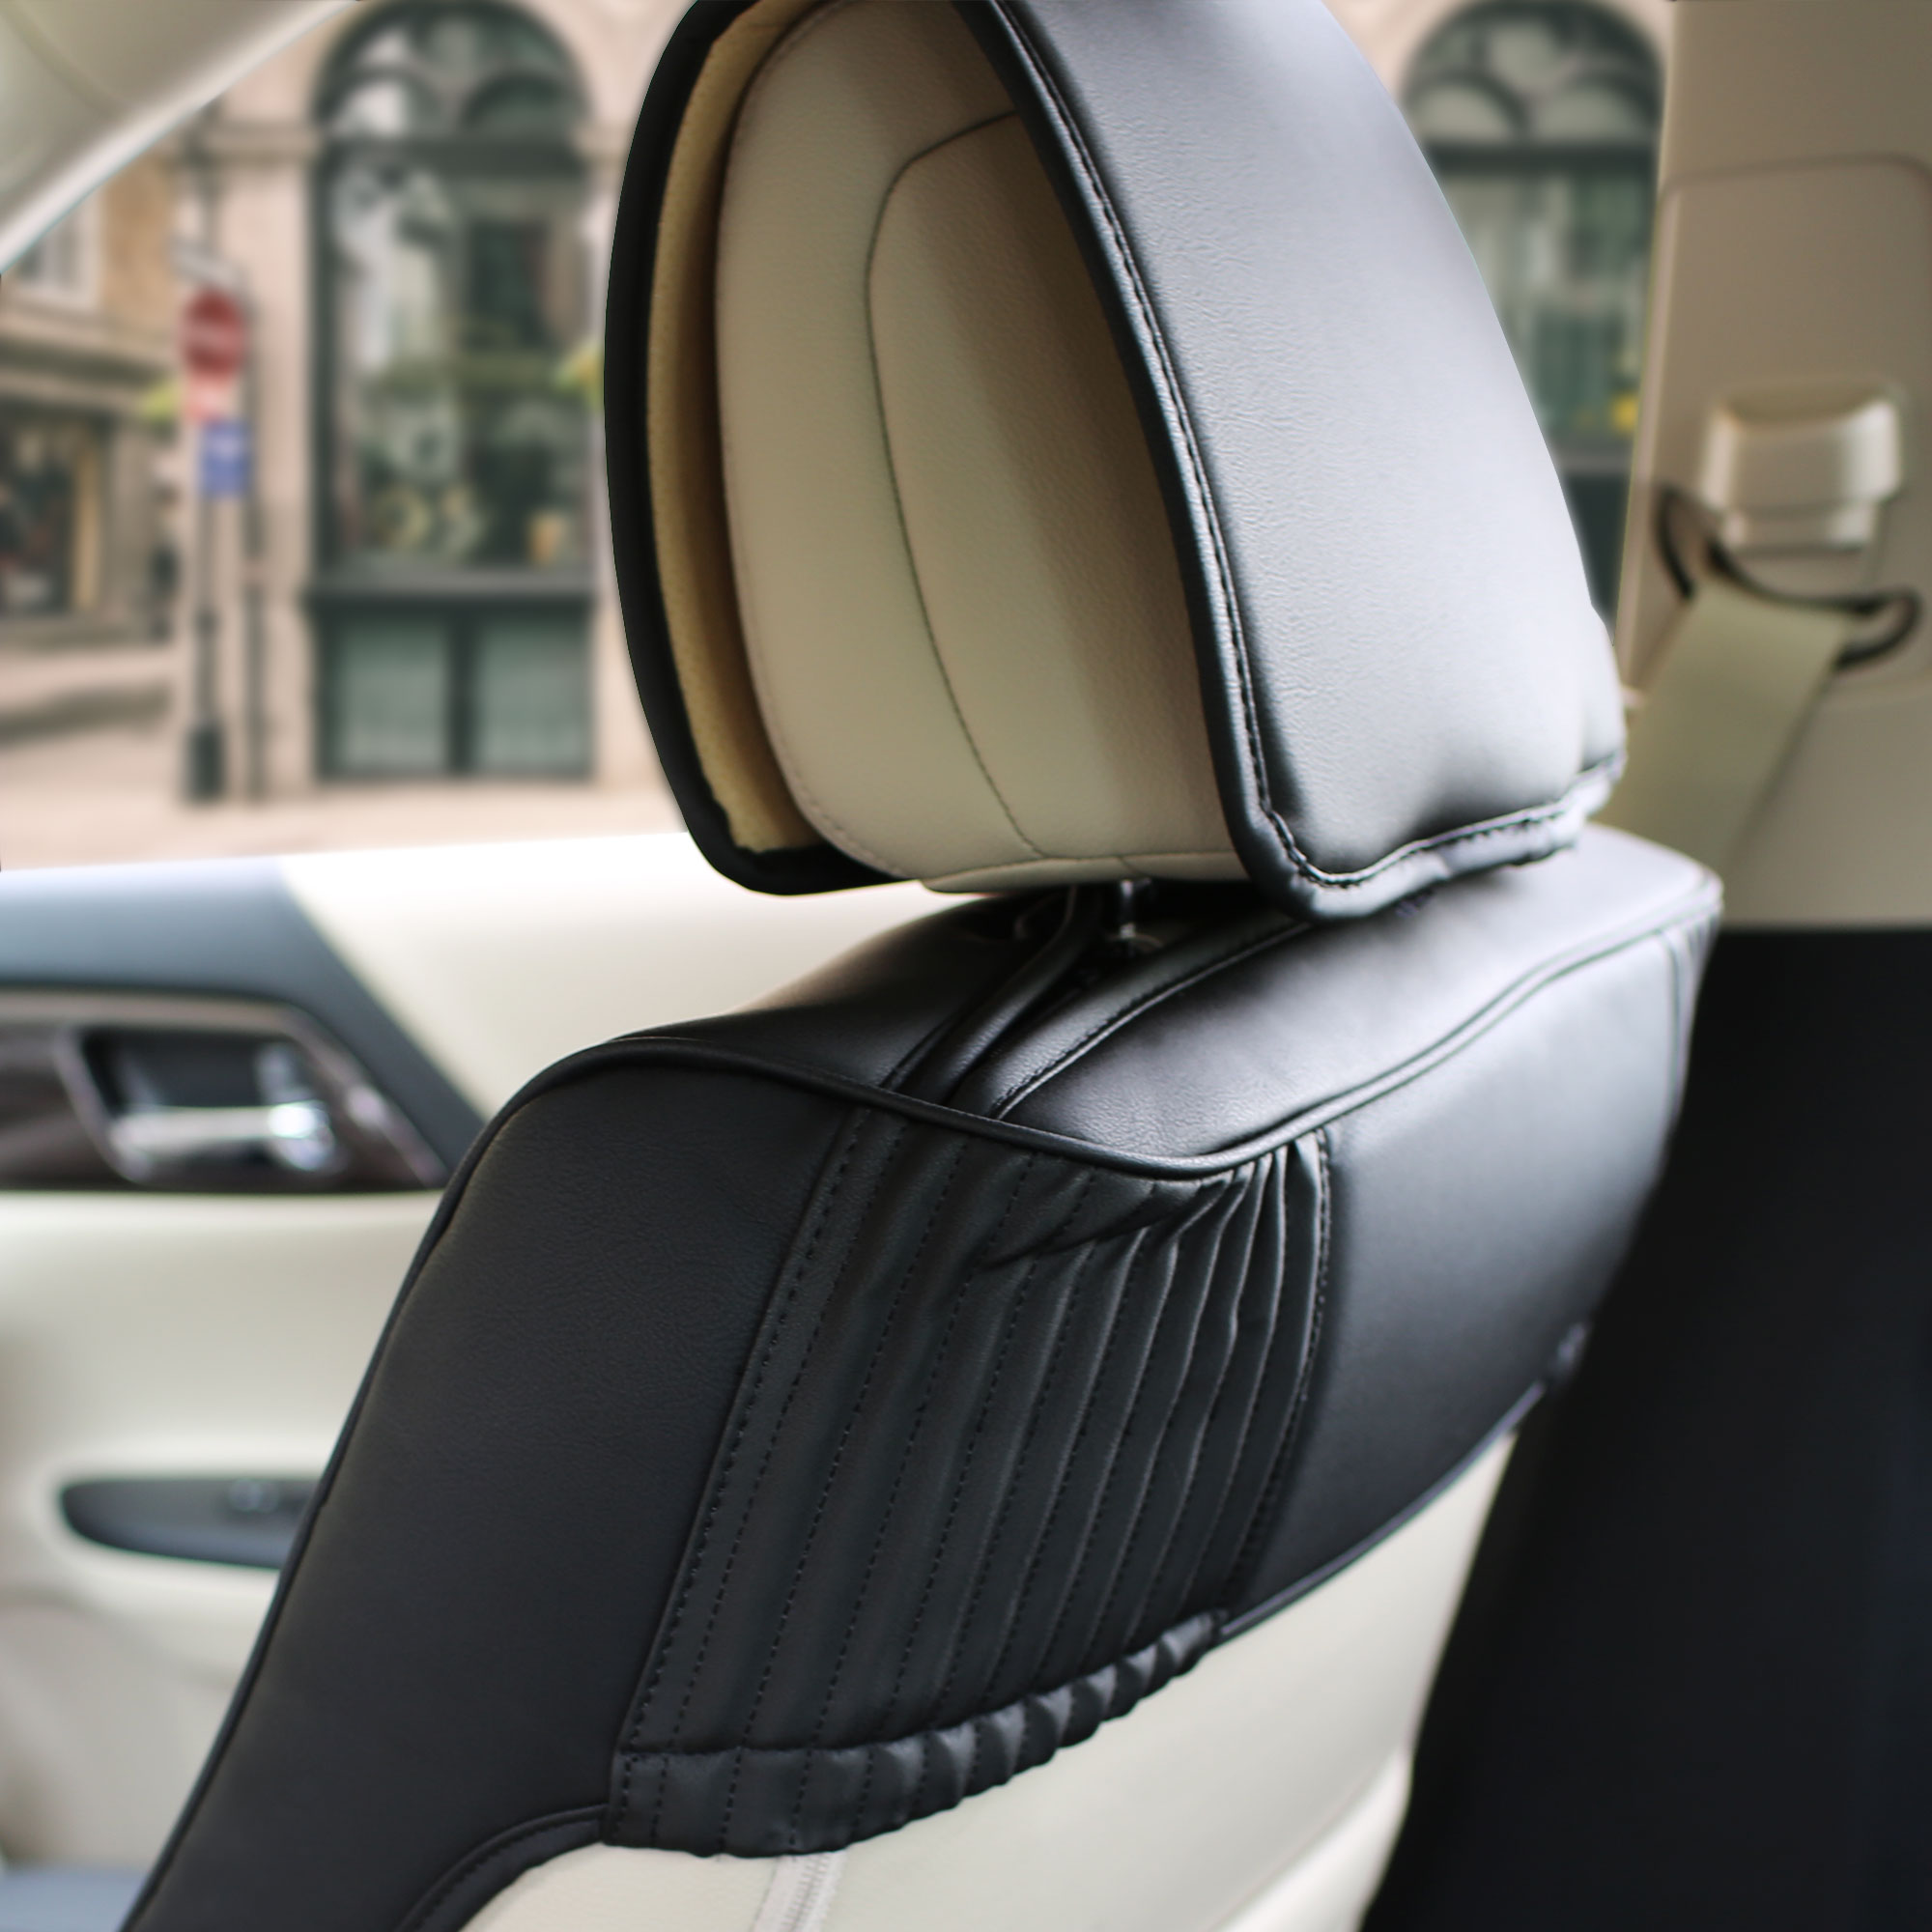 Luxury-Leather-Seat-Cushion-Covers-Front-Bucket-Pair-11-Color-Options thumbnail 8